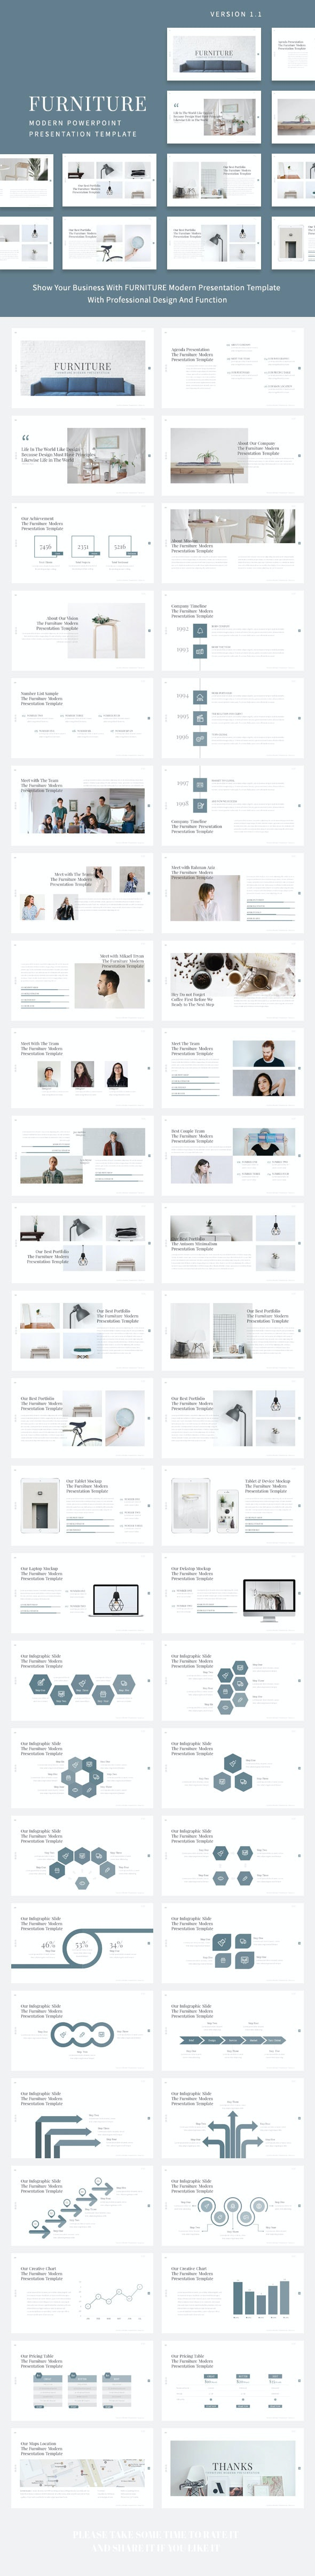 Furniture - Modern Powerpoint Presentation Template - Business PowerPoint Templates